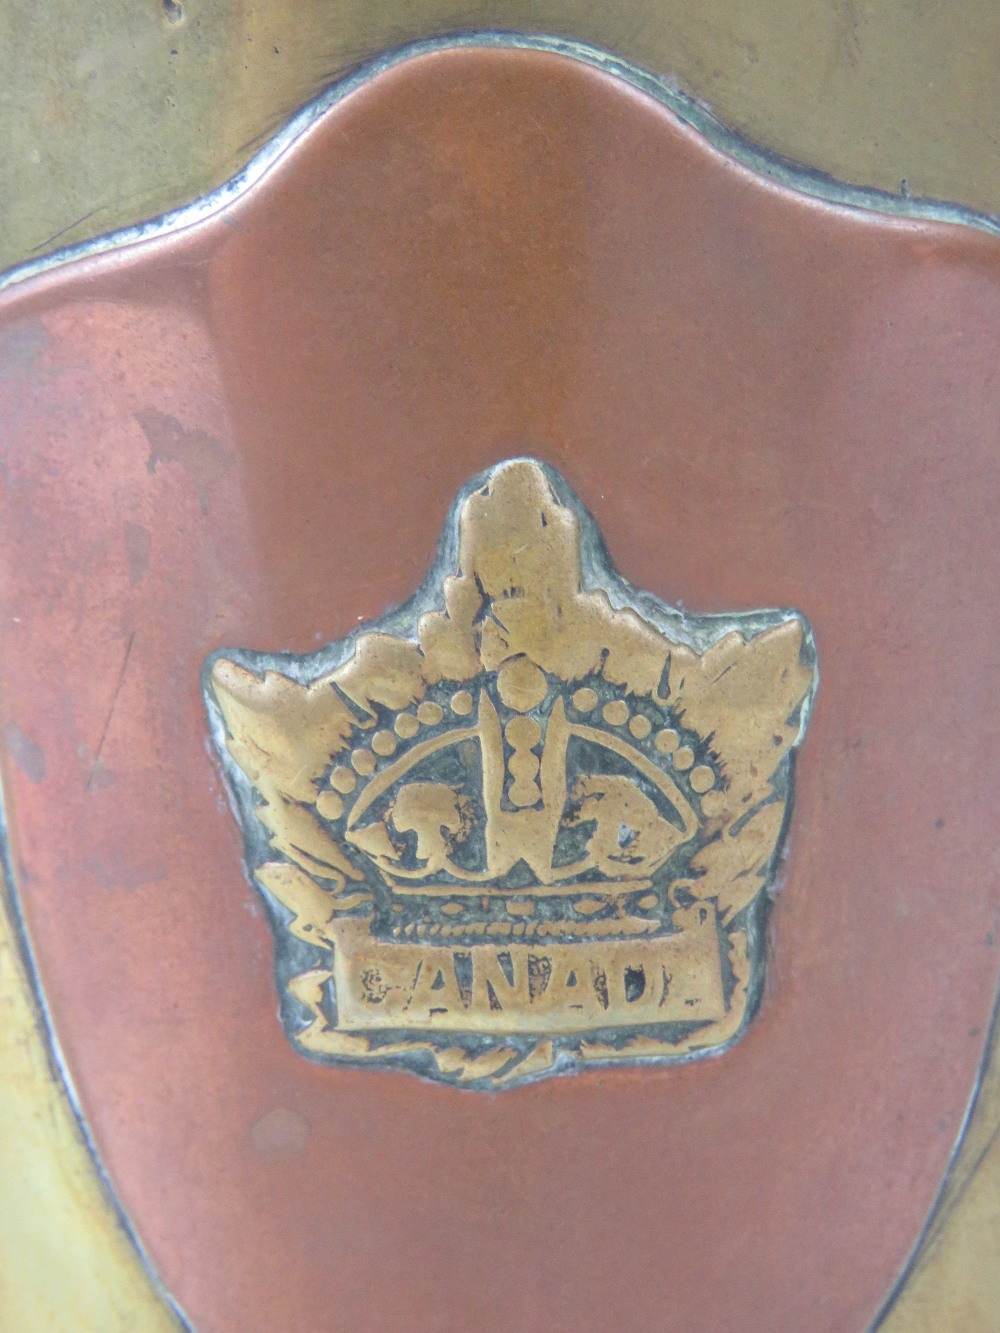 A trench Art shell case lidded pot having Royal Army Services Corps and Canadian Military badges - Image 4 of 5